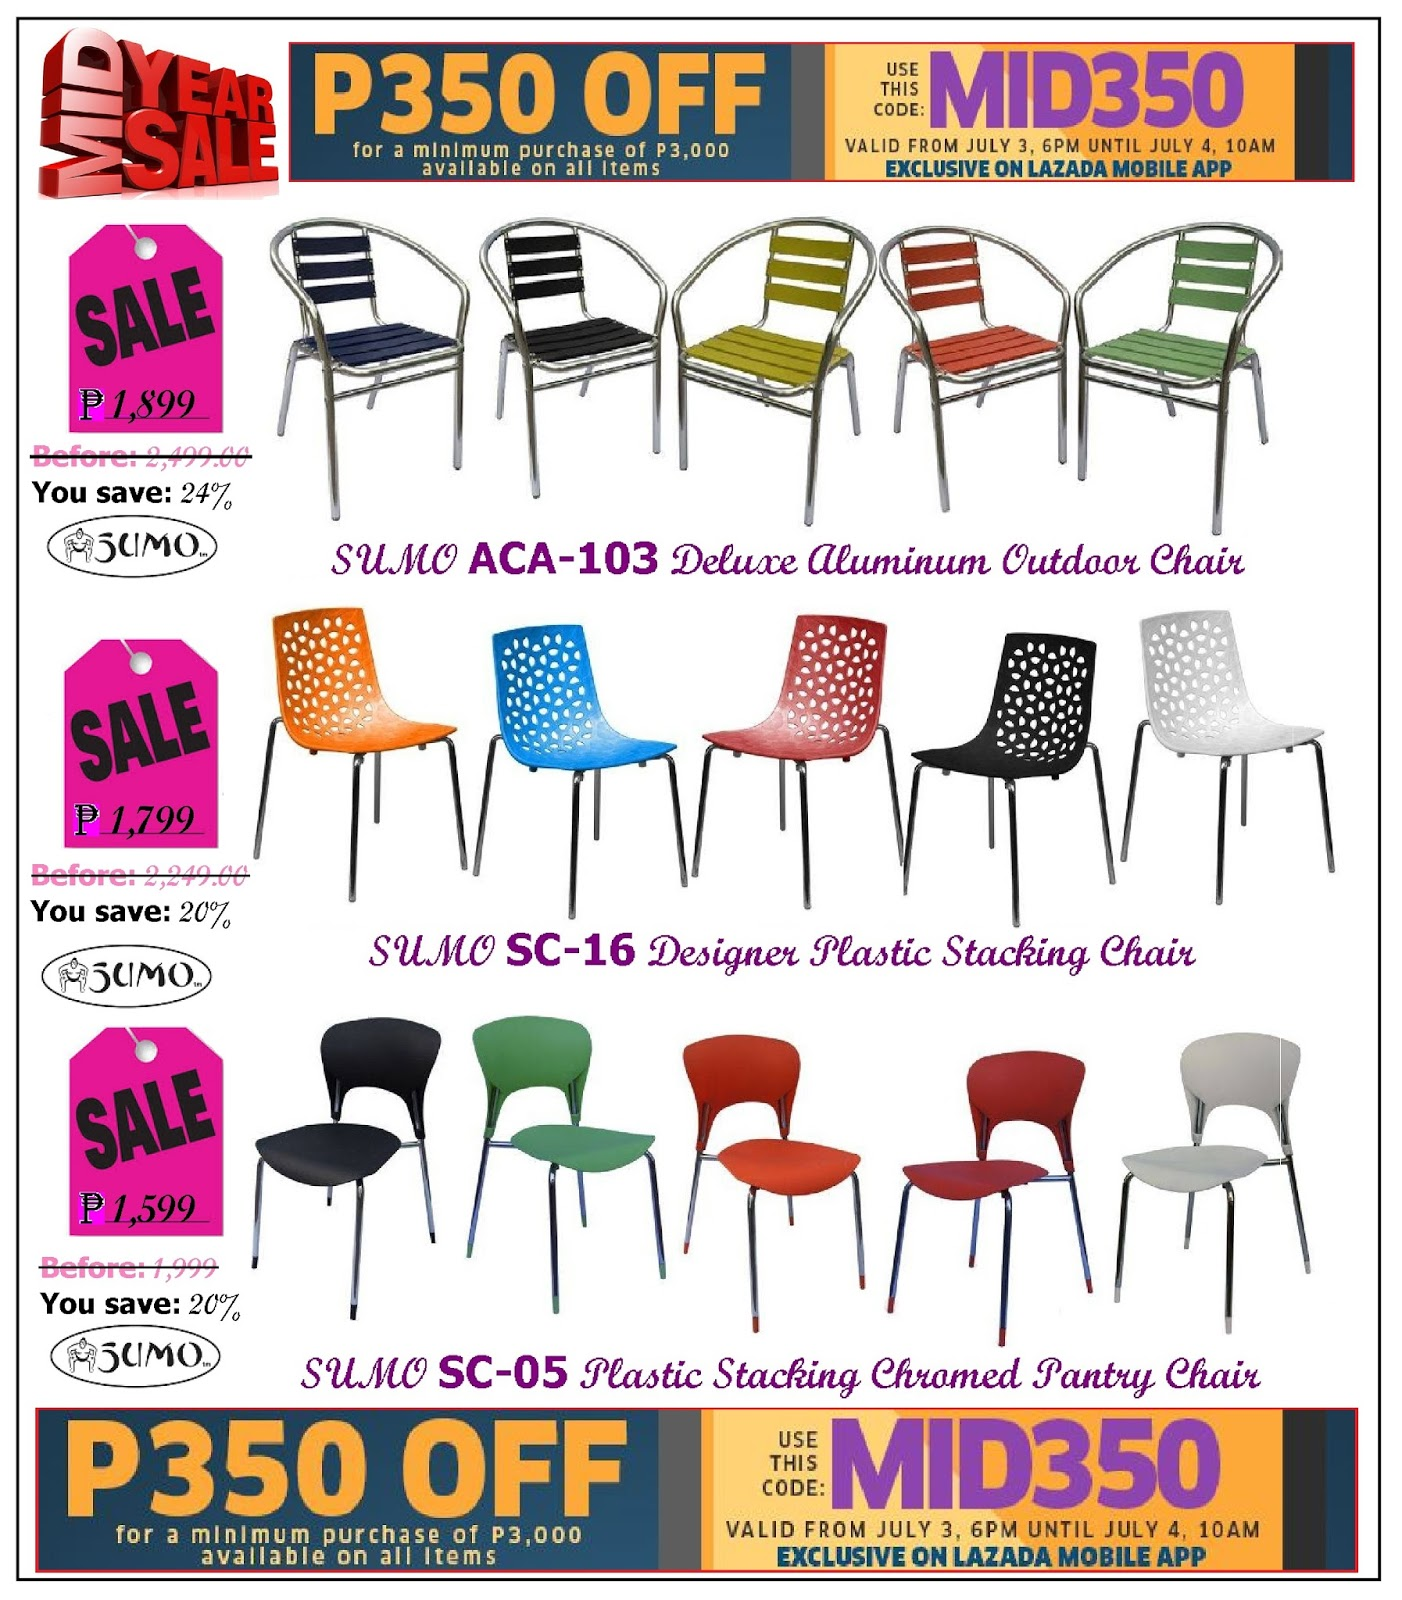 Cost U Less fice Furniture Manila Furniture Supplier Manila Window